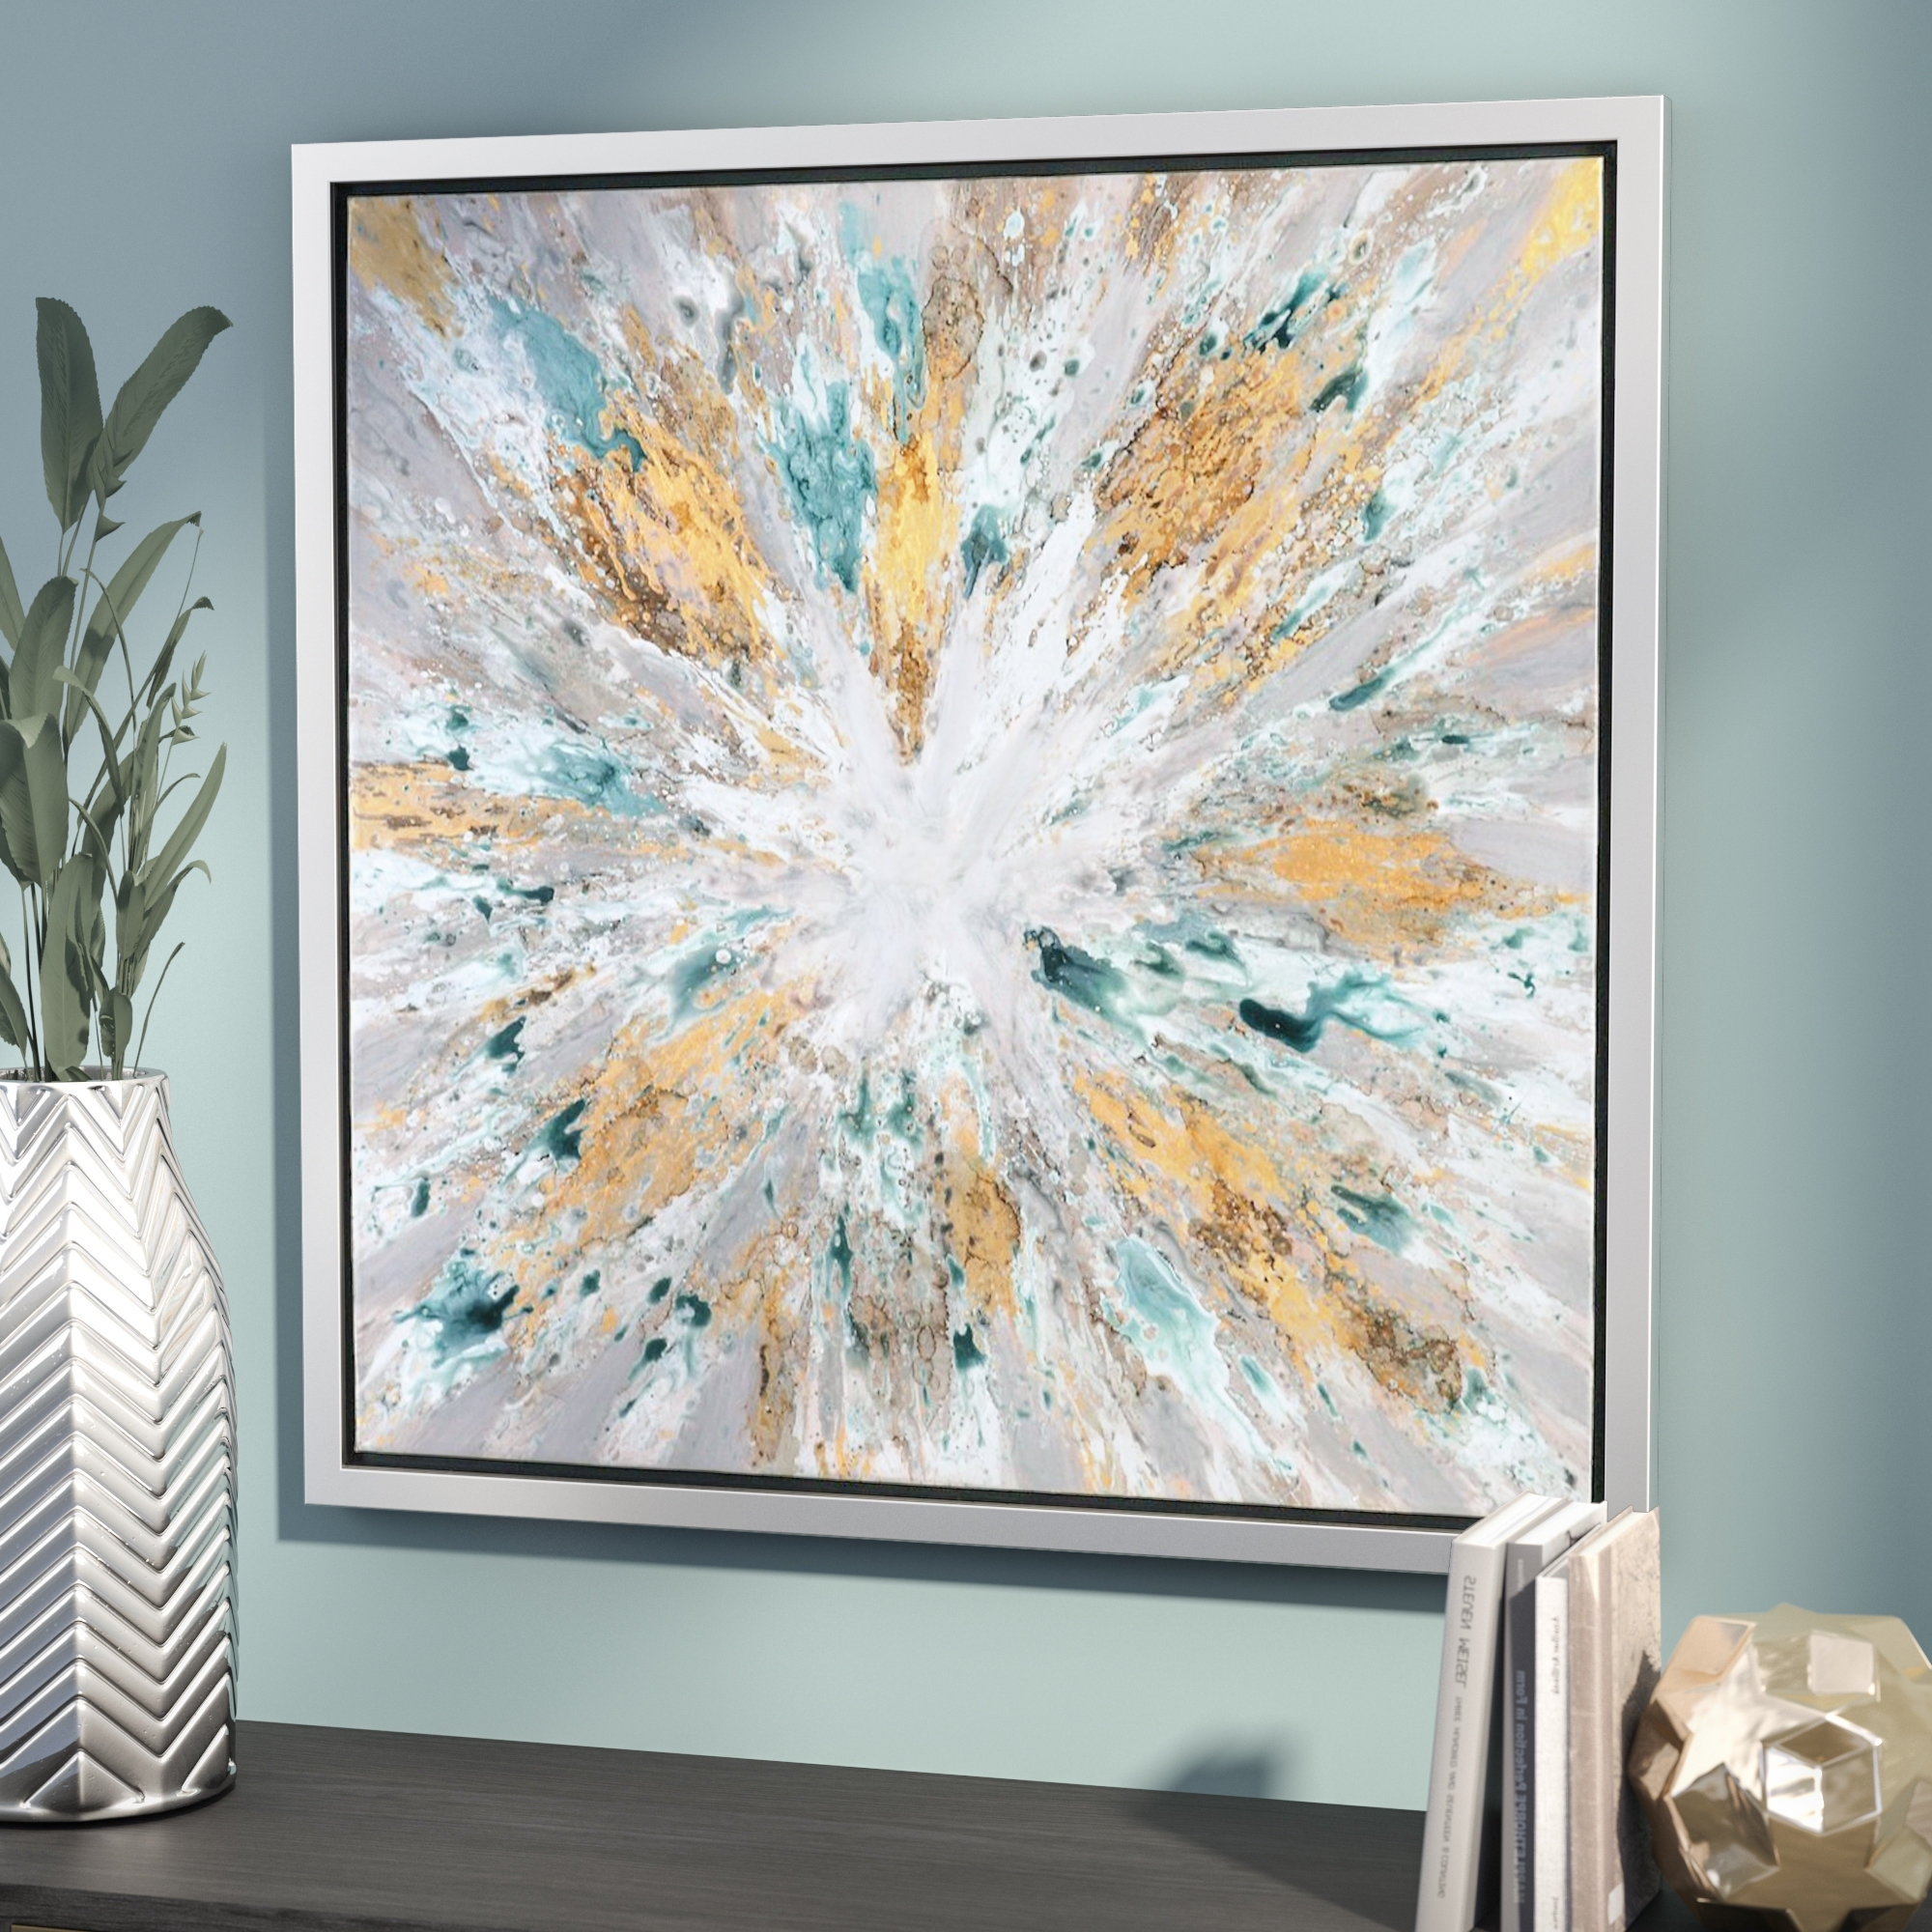 Willa Arlo Interiors 'exploding Star Modern' Abstract Framed Oil Pertaining To Most Recently Released Ottawa Abstract Wall Art (View 15 of 15)